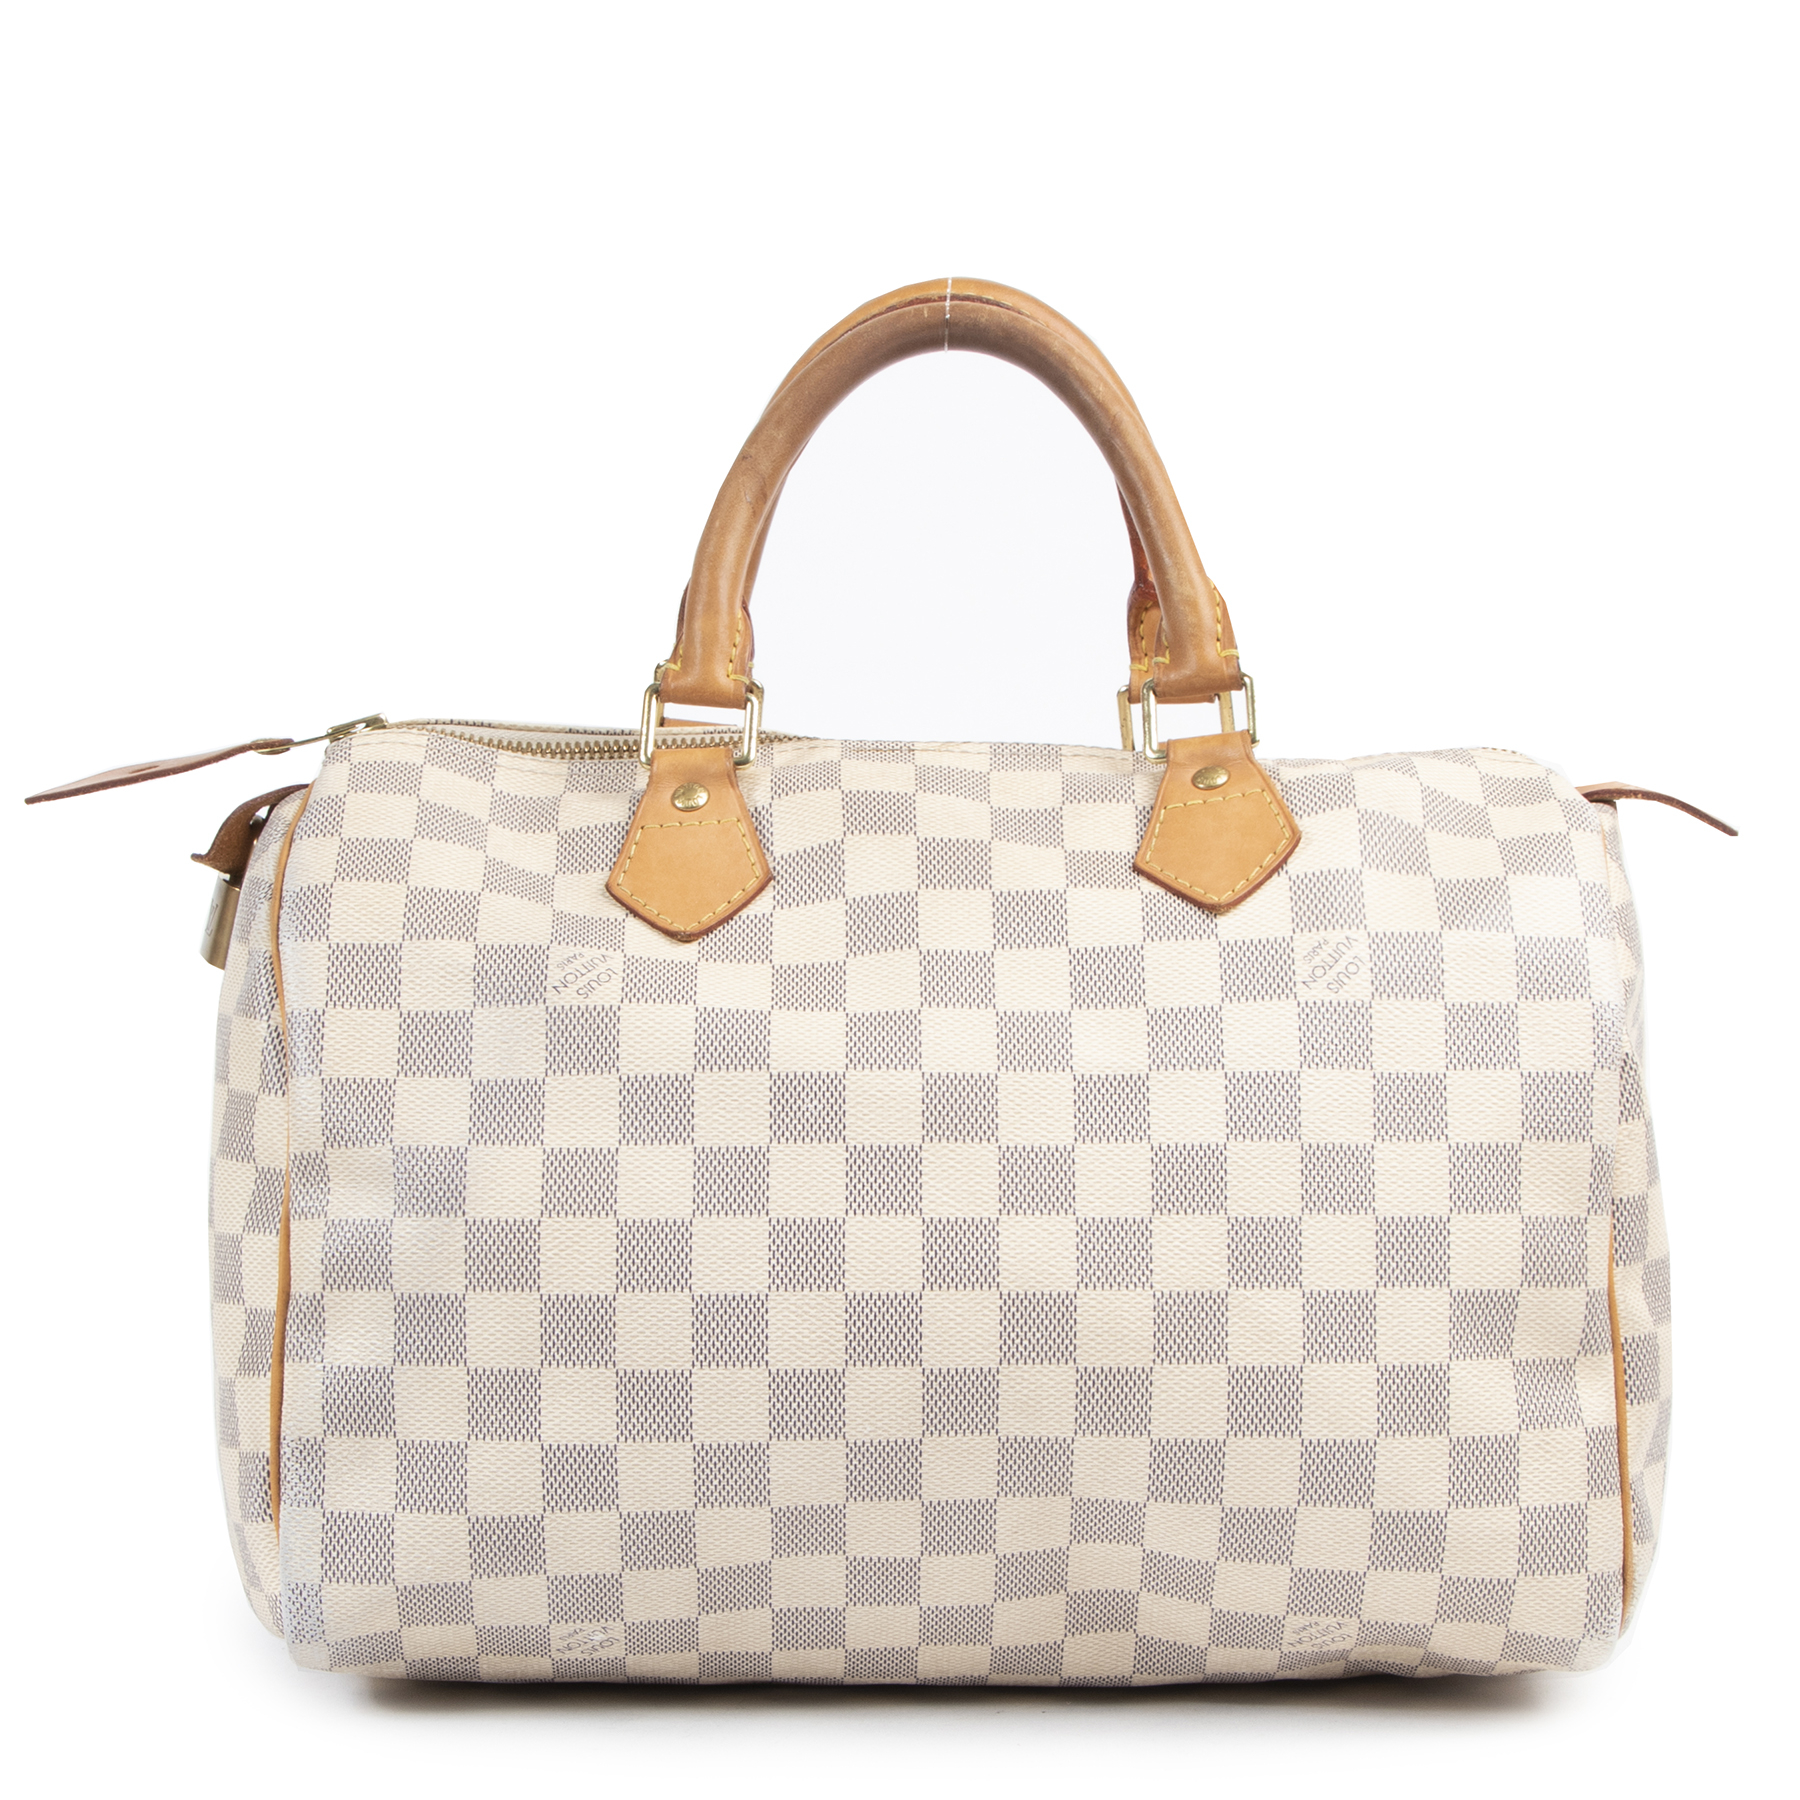 We buy and sell your authentic designer Louis Vuitton Speedy 30 Damier Azur